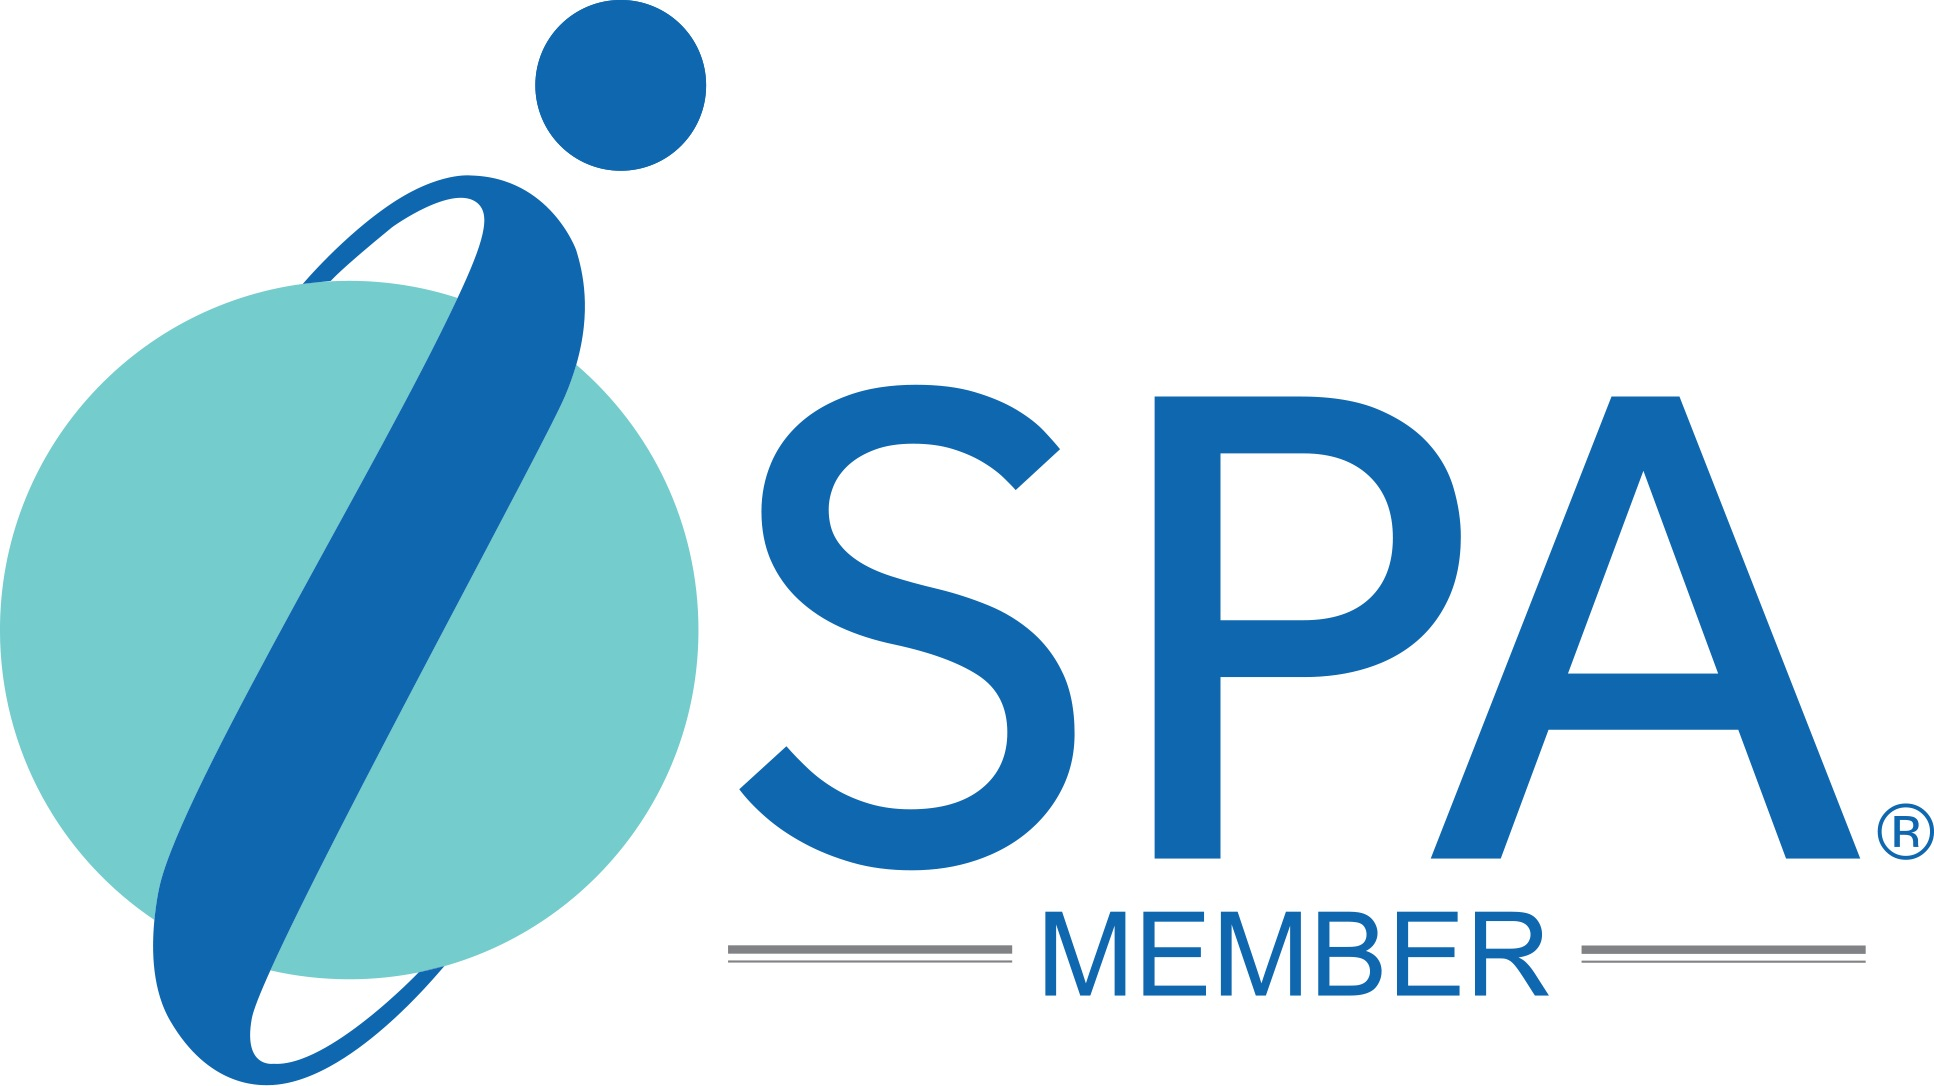 International Spa Association (ISPA) Member - Makes Scents Natural Spa Line